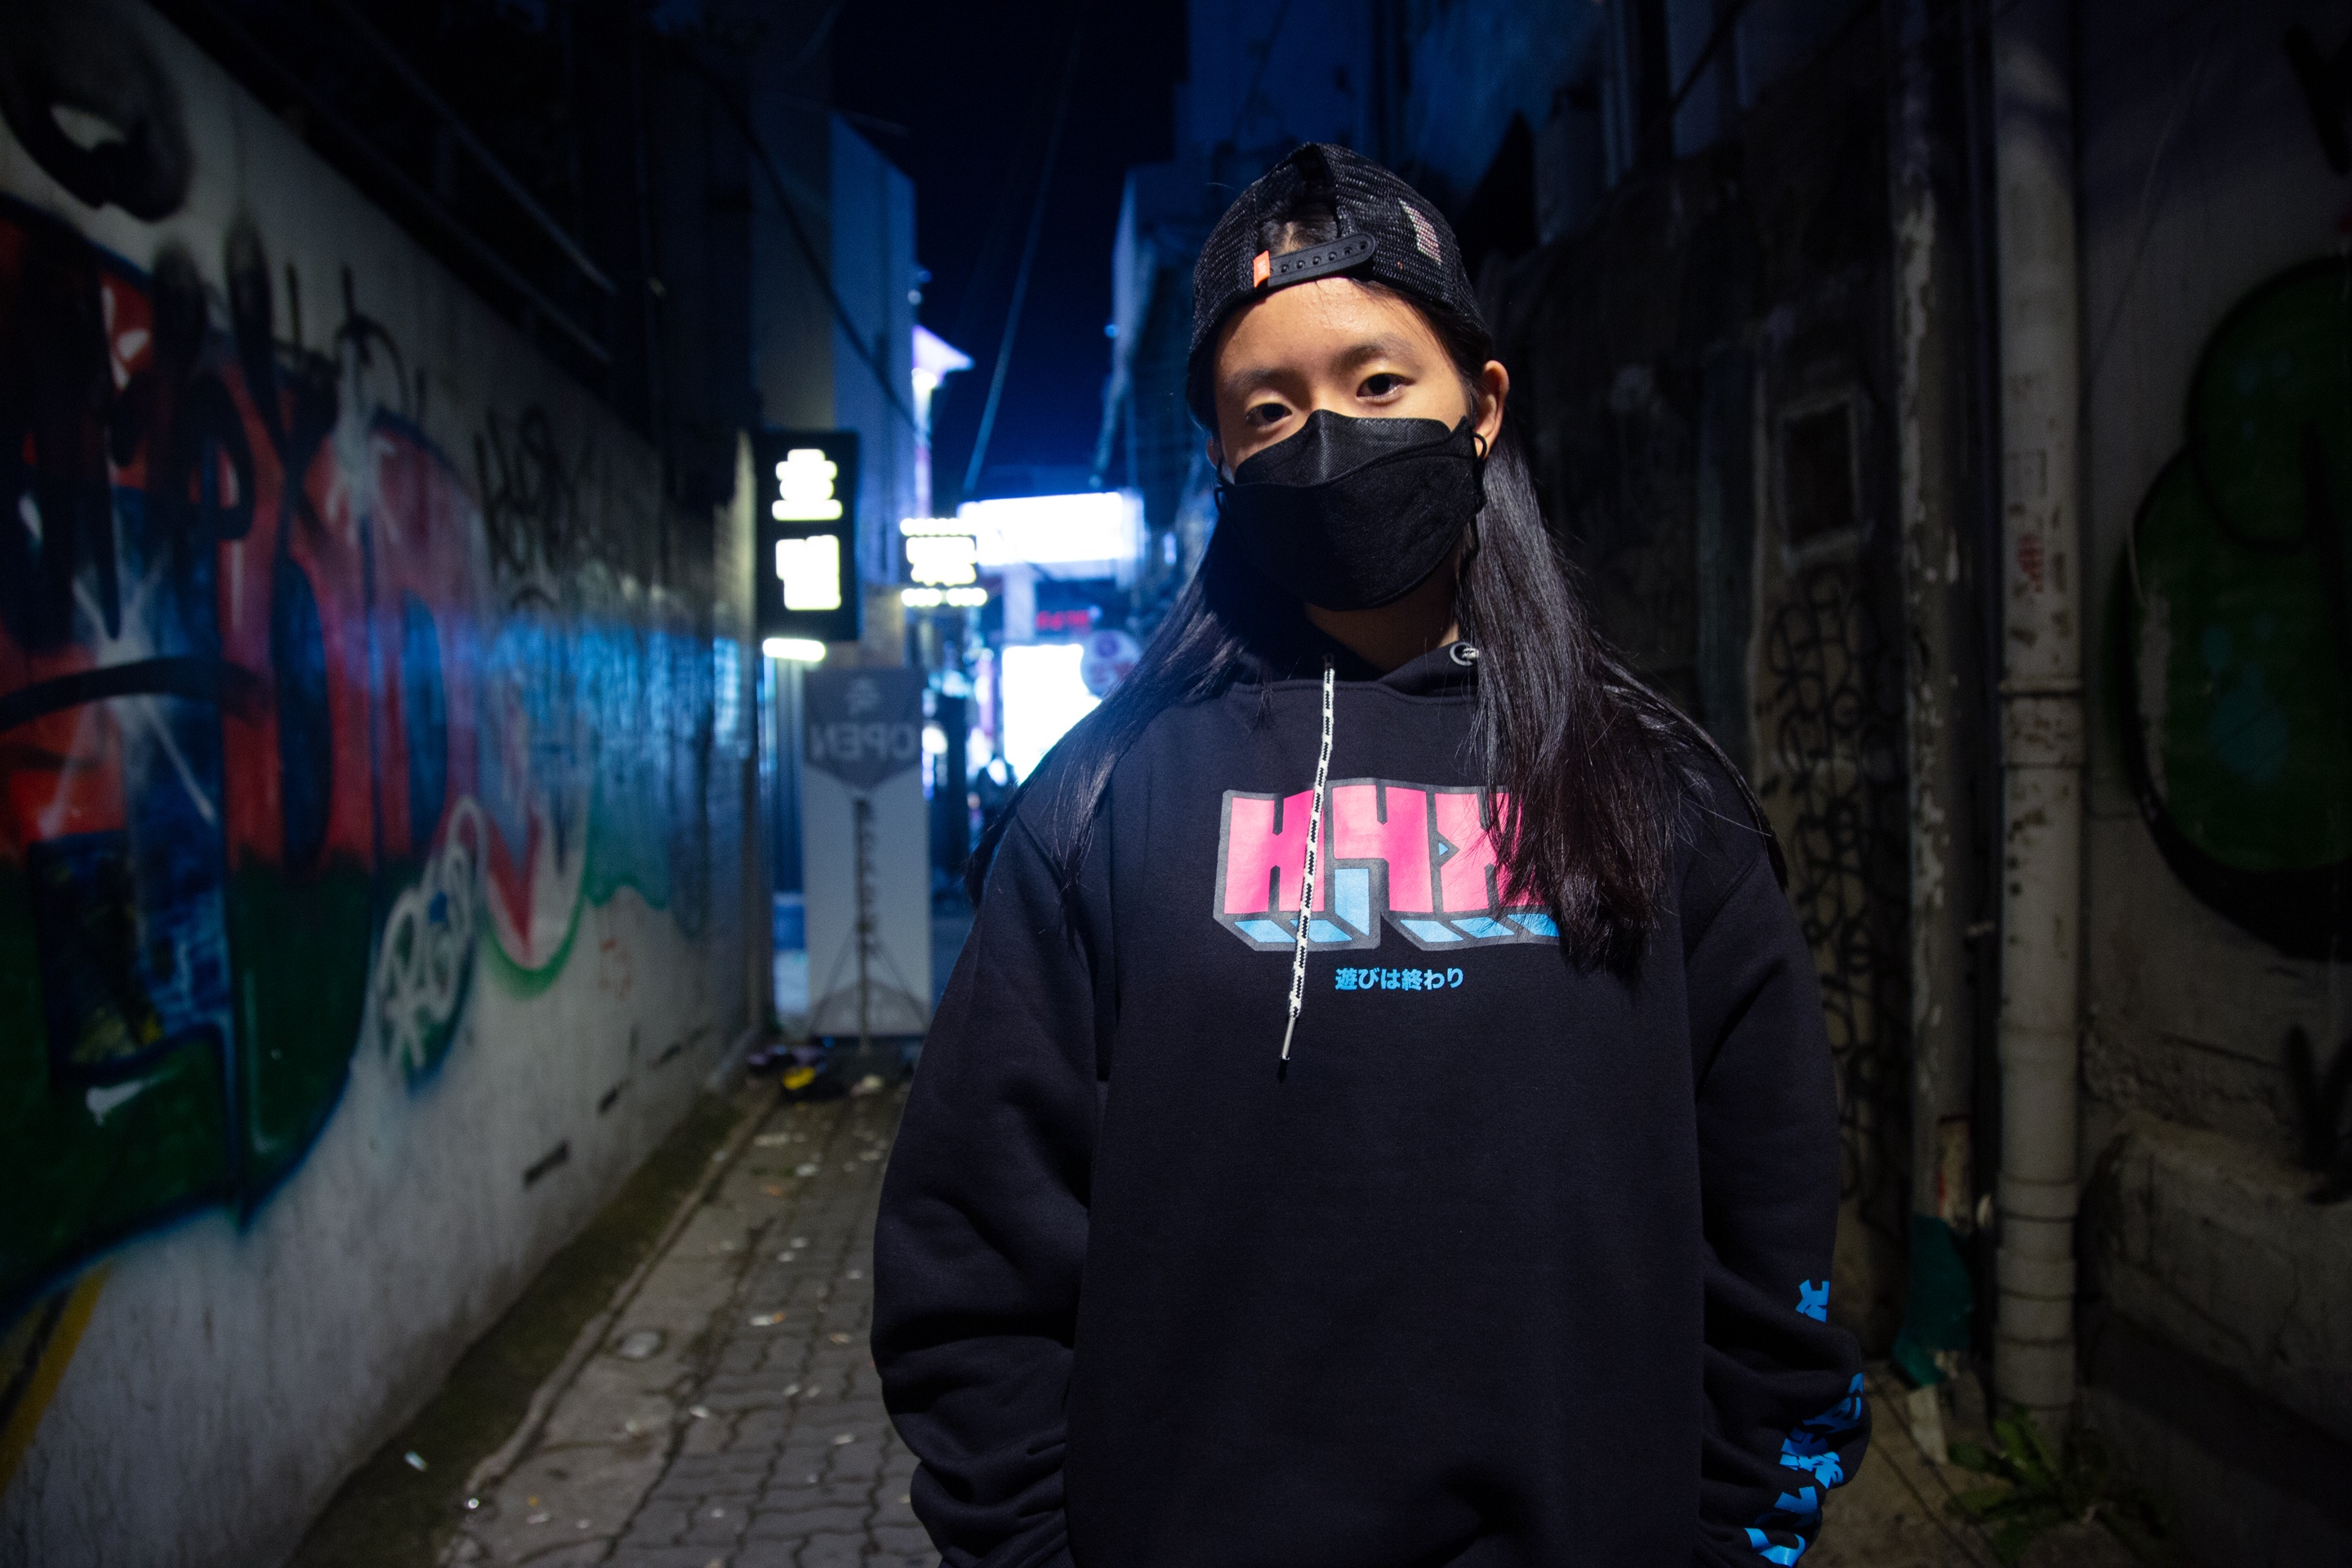 E-sports apparel brand, H4X, is one of the world's first clothing lines specifically for gamers.